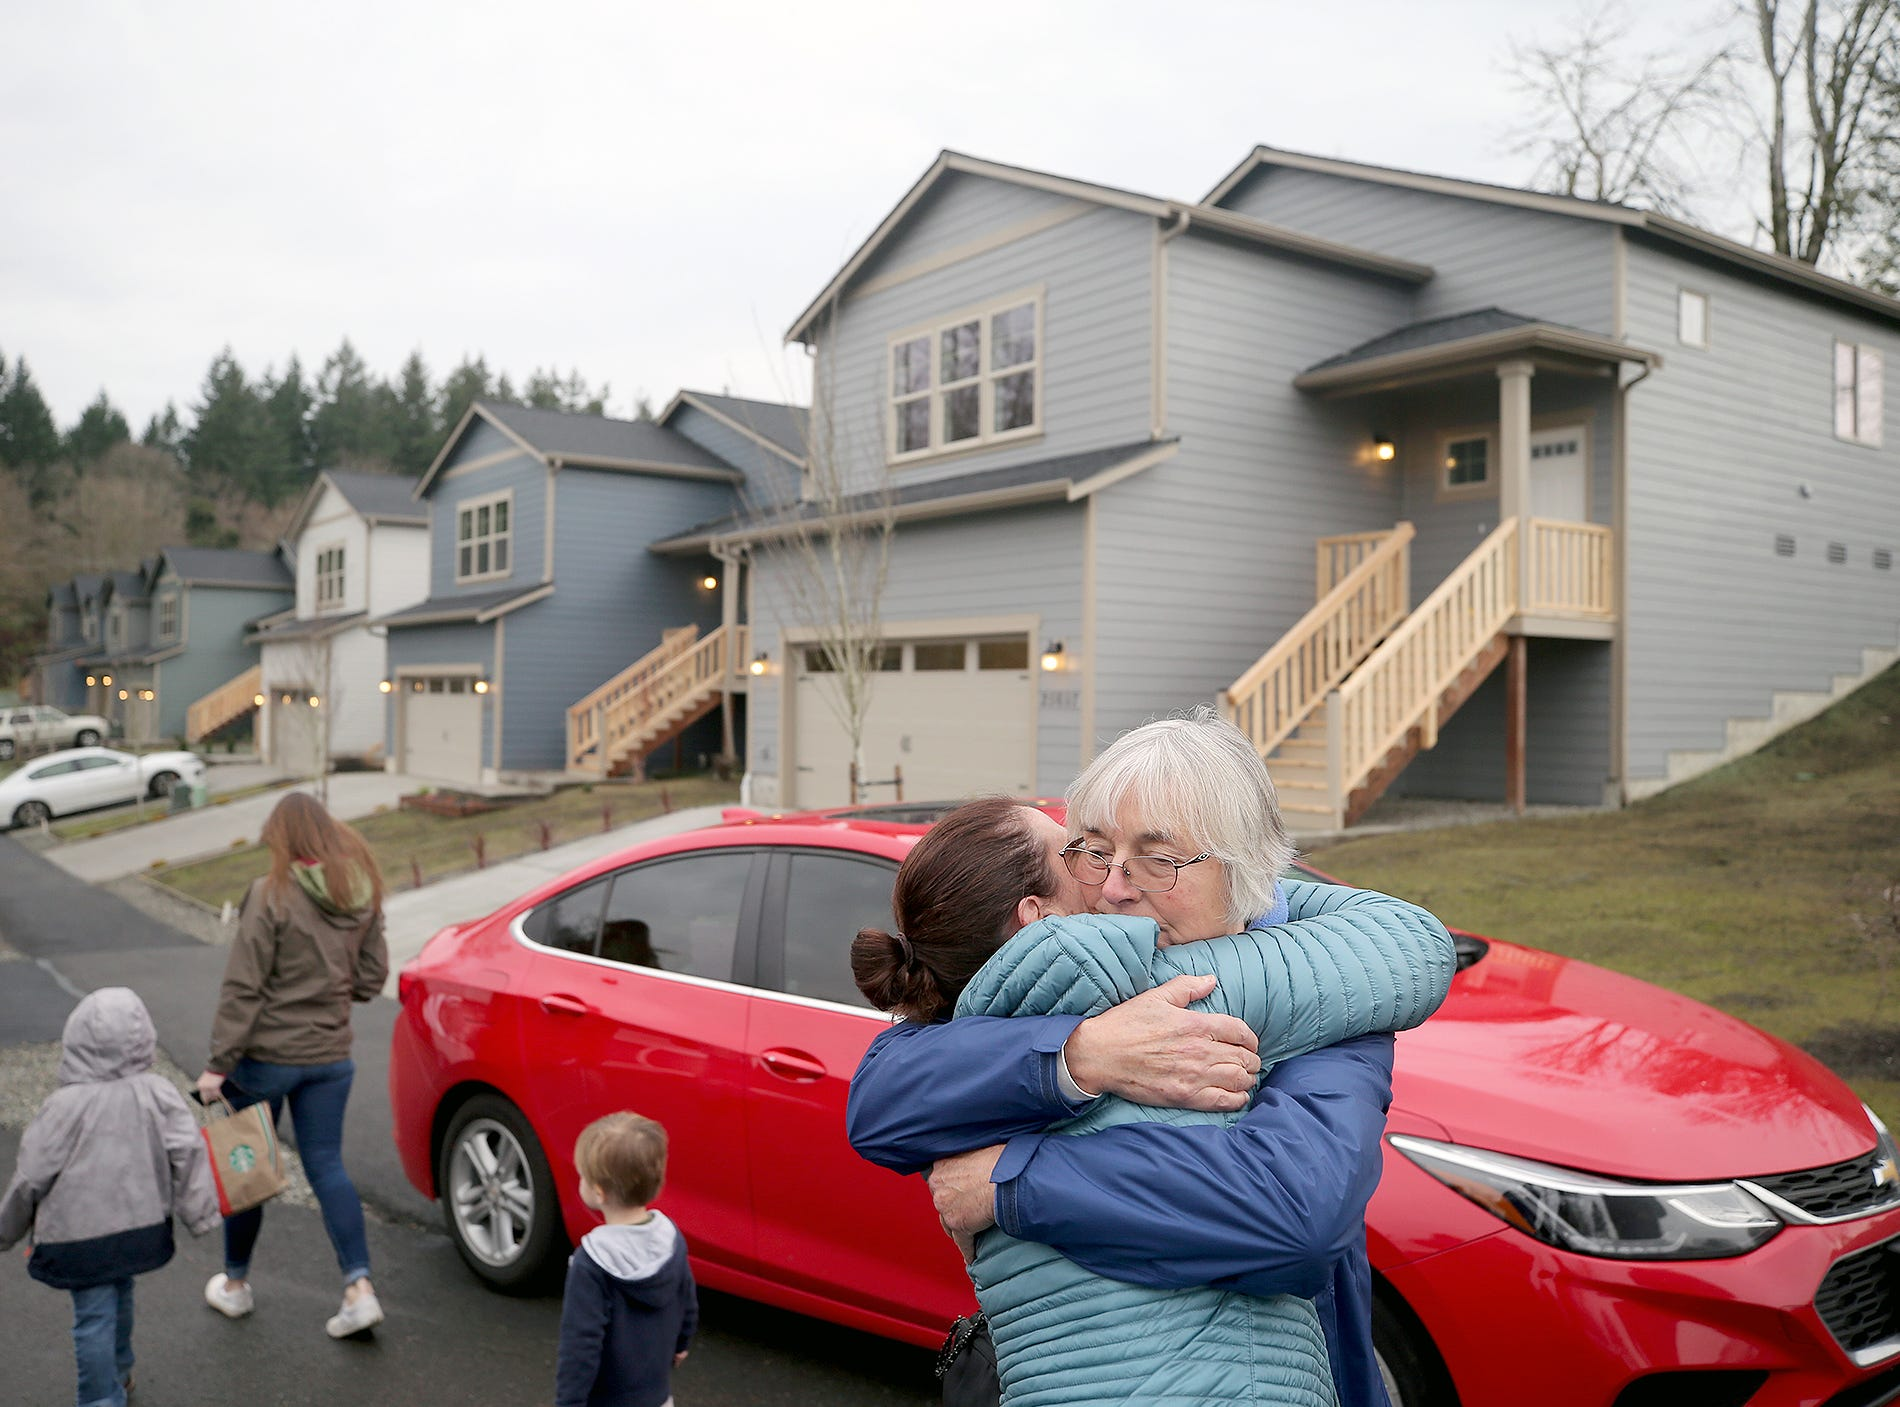 Ruby Moss of Bremerton gets a hug from Julie Buonacre of Bremerton at the opening ceremony of the Maple Lane Group One Kitsap Housing development in Kington on Friday, December 14, 2018. Her son Michael Porter was the construction superintendent on the site, they had a memorial for him because he tragically passed away last week.